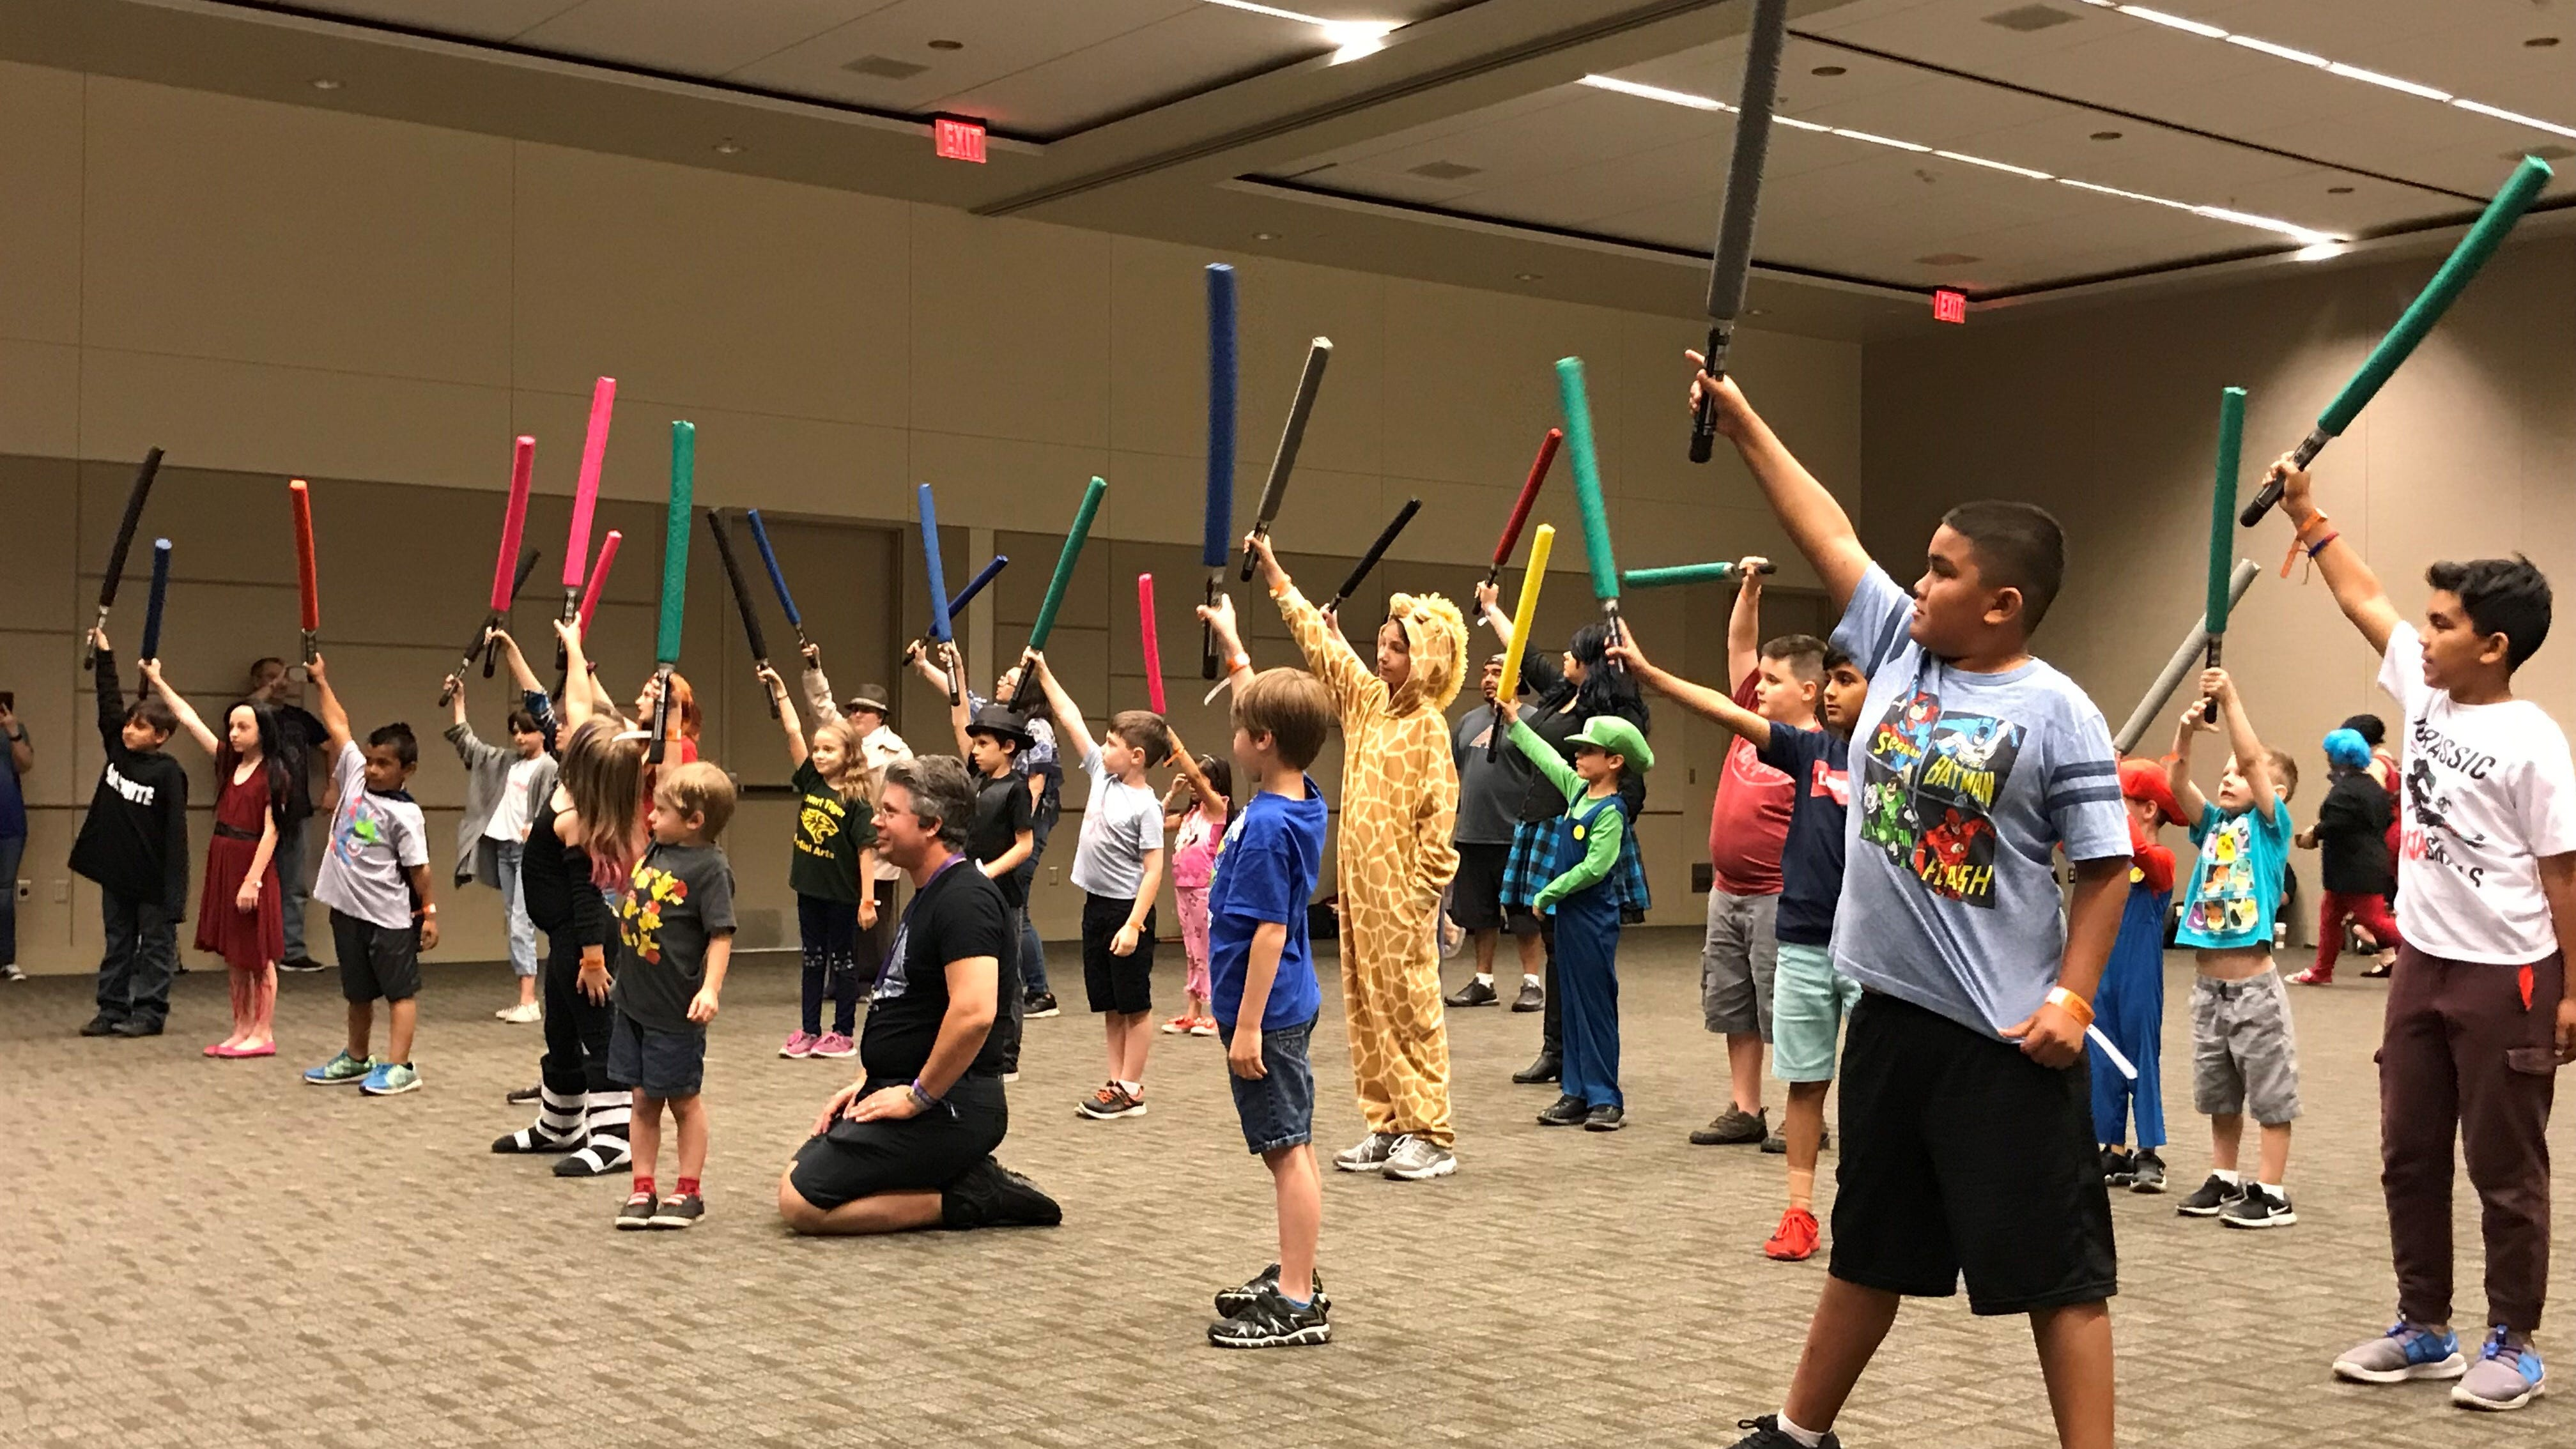 Young Padawans practice the art of the lightsaber at Phoenix Fan Fusion on May 23, 2019.